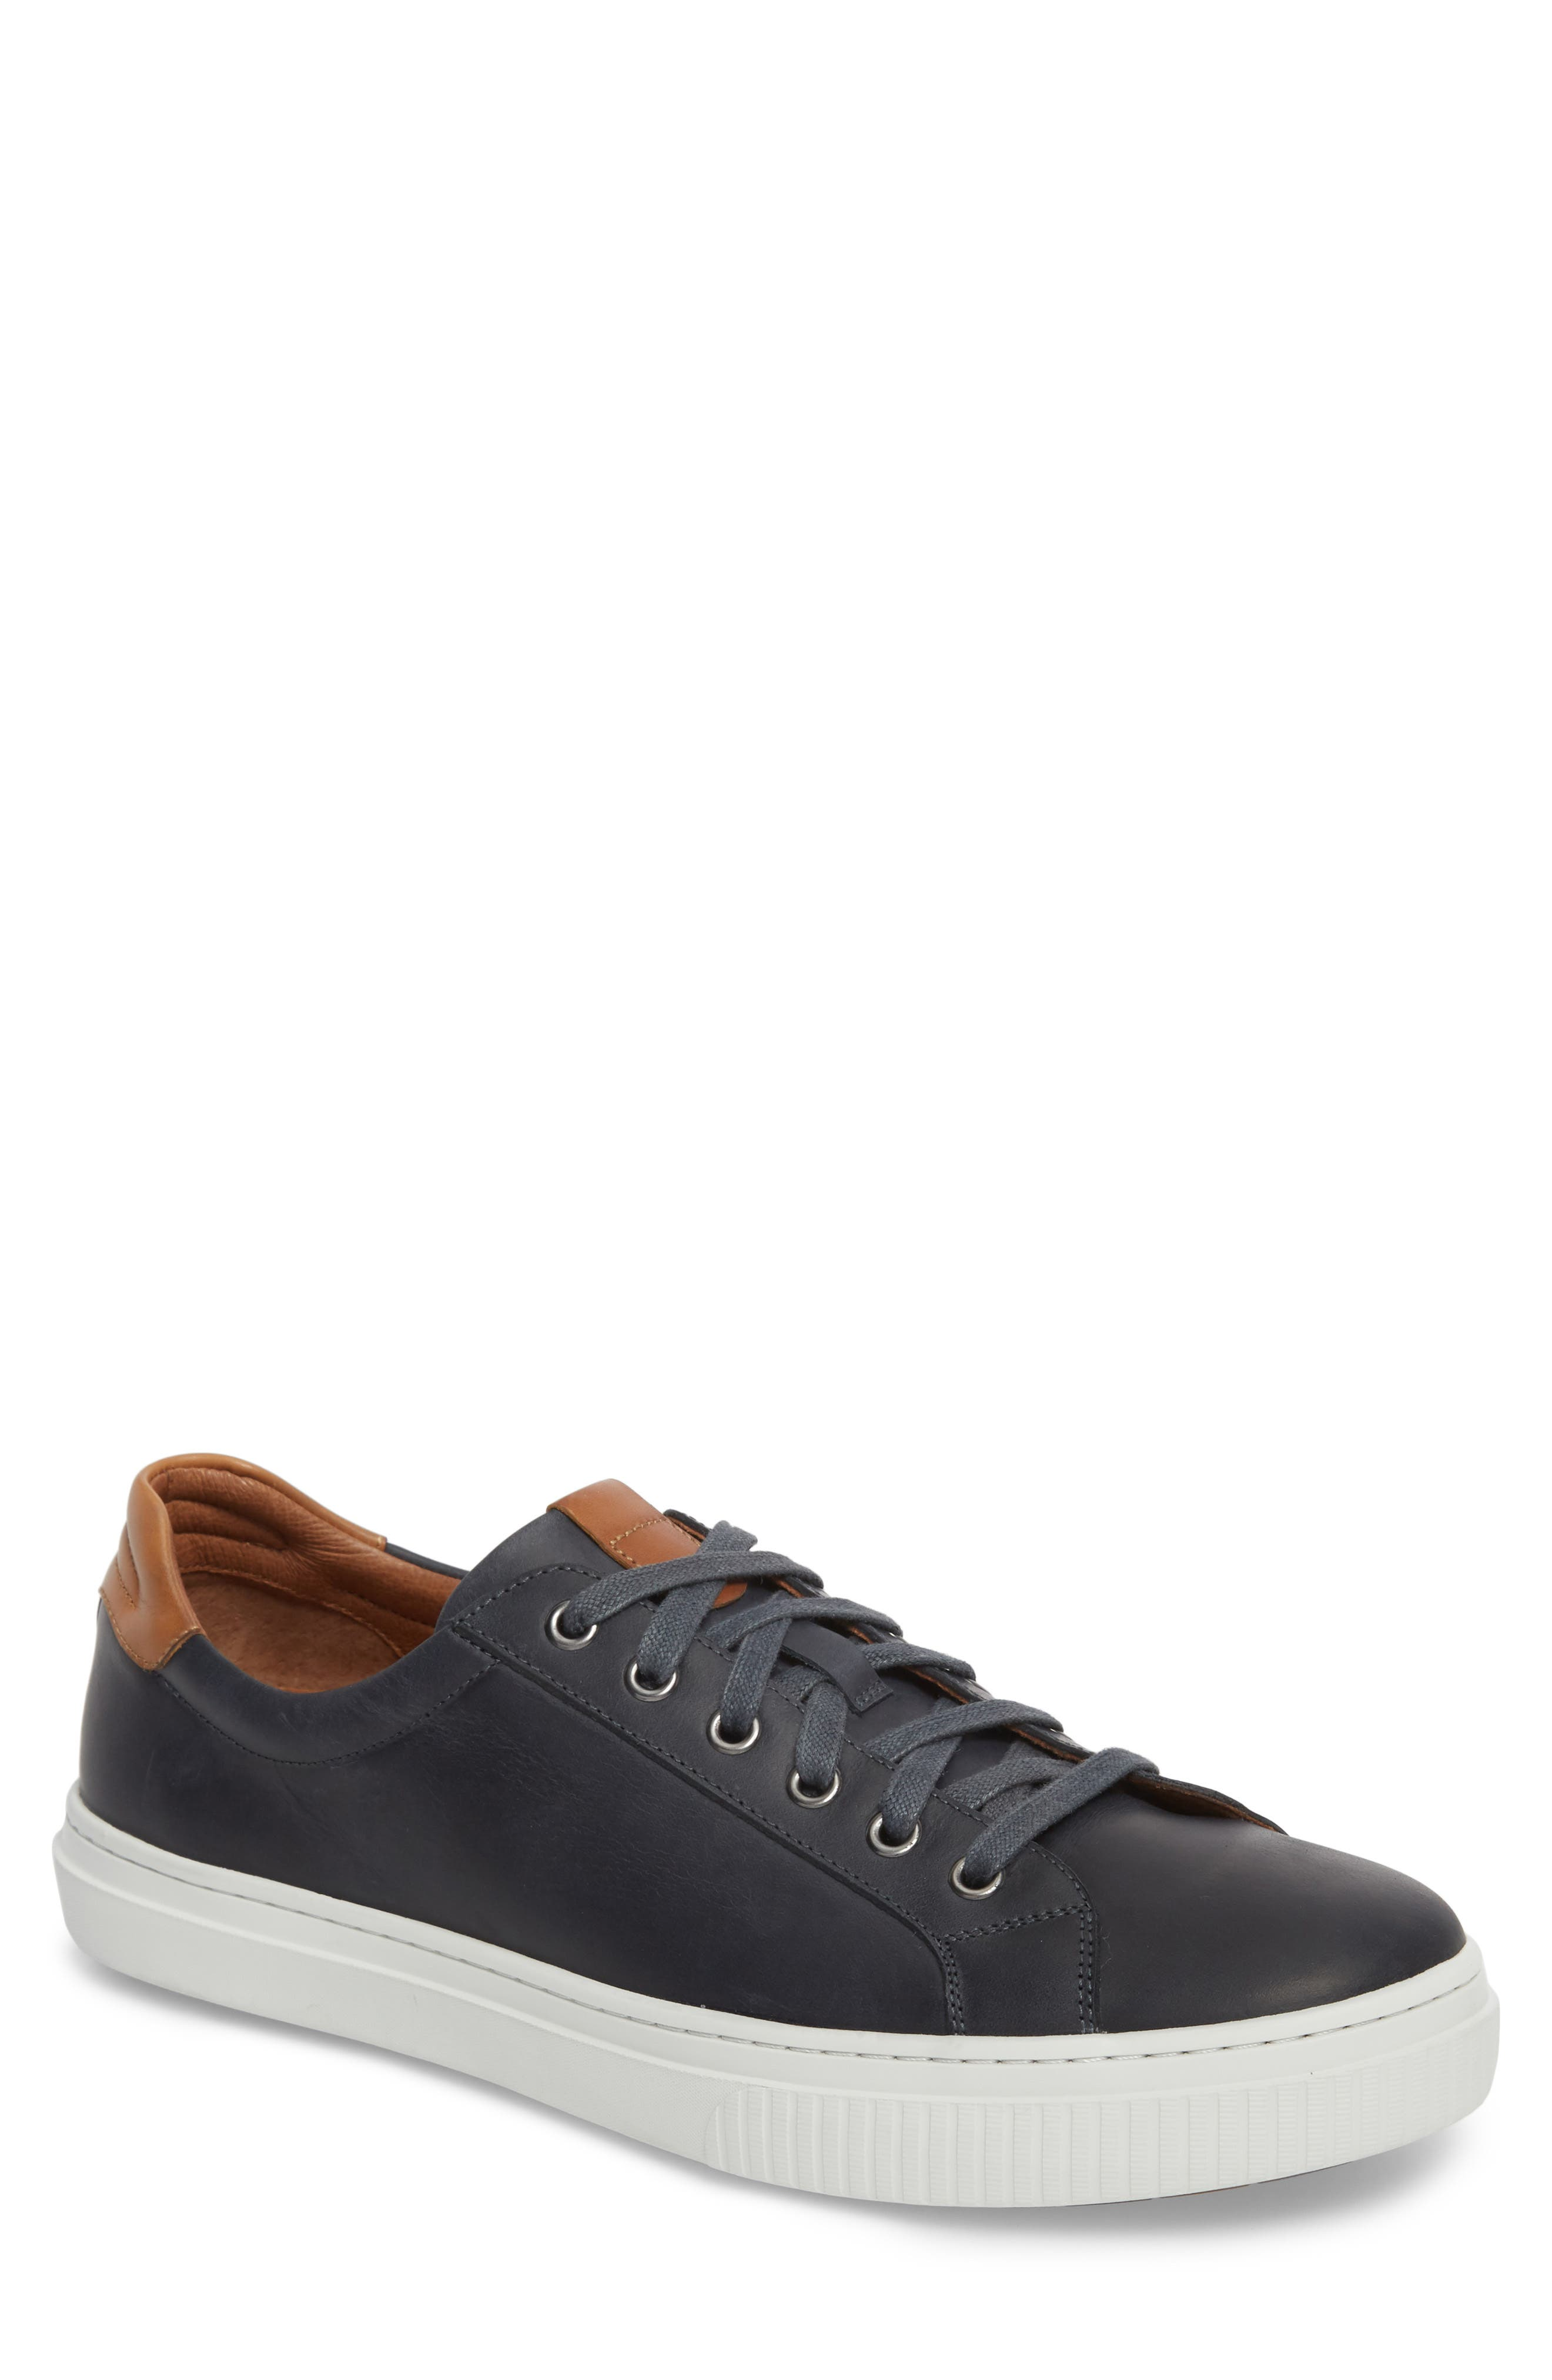 J & m 1850 Toliver Low Top Sneaker- Blue